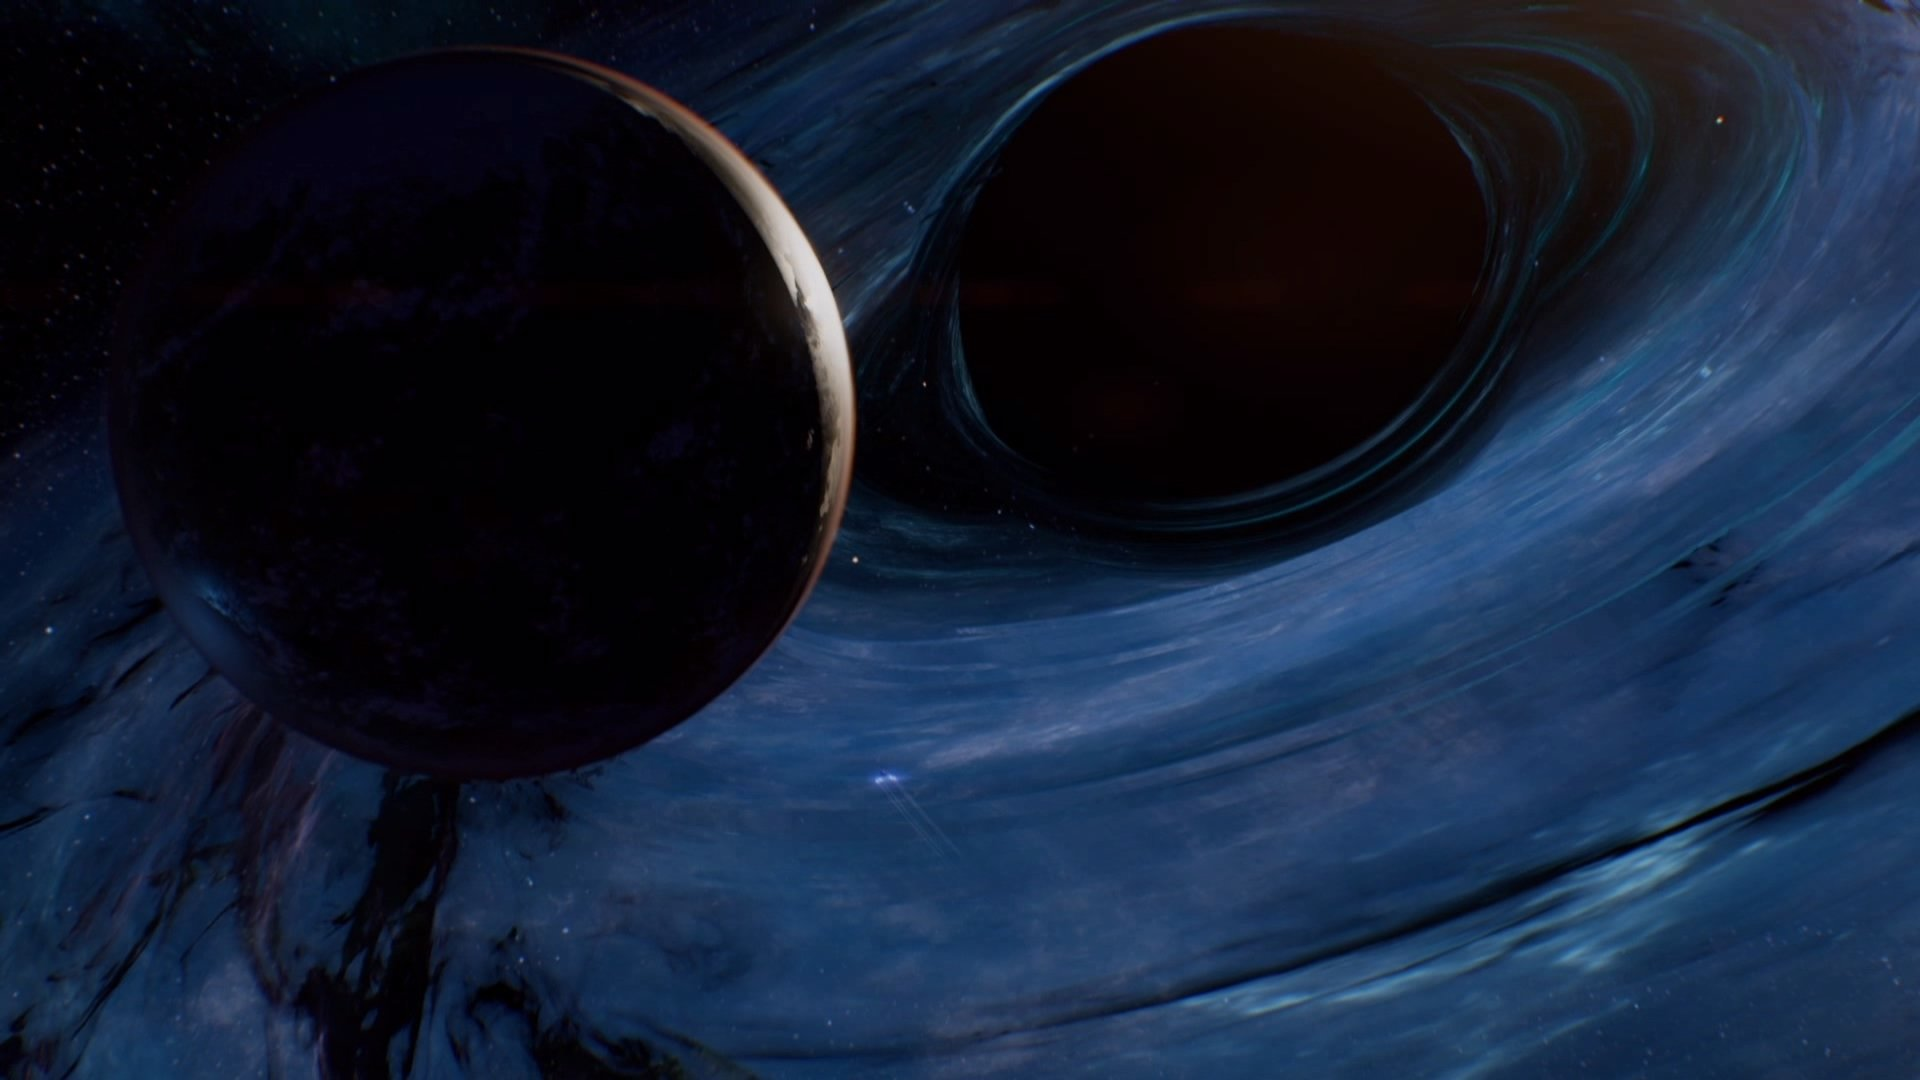 mass effect epic black hole - photo #46